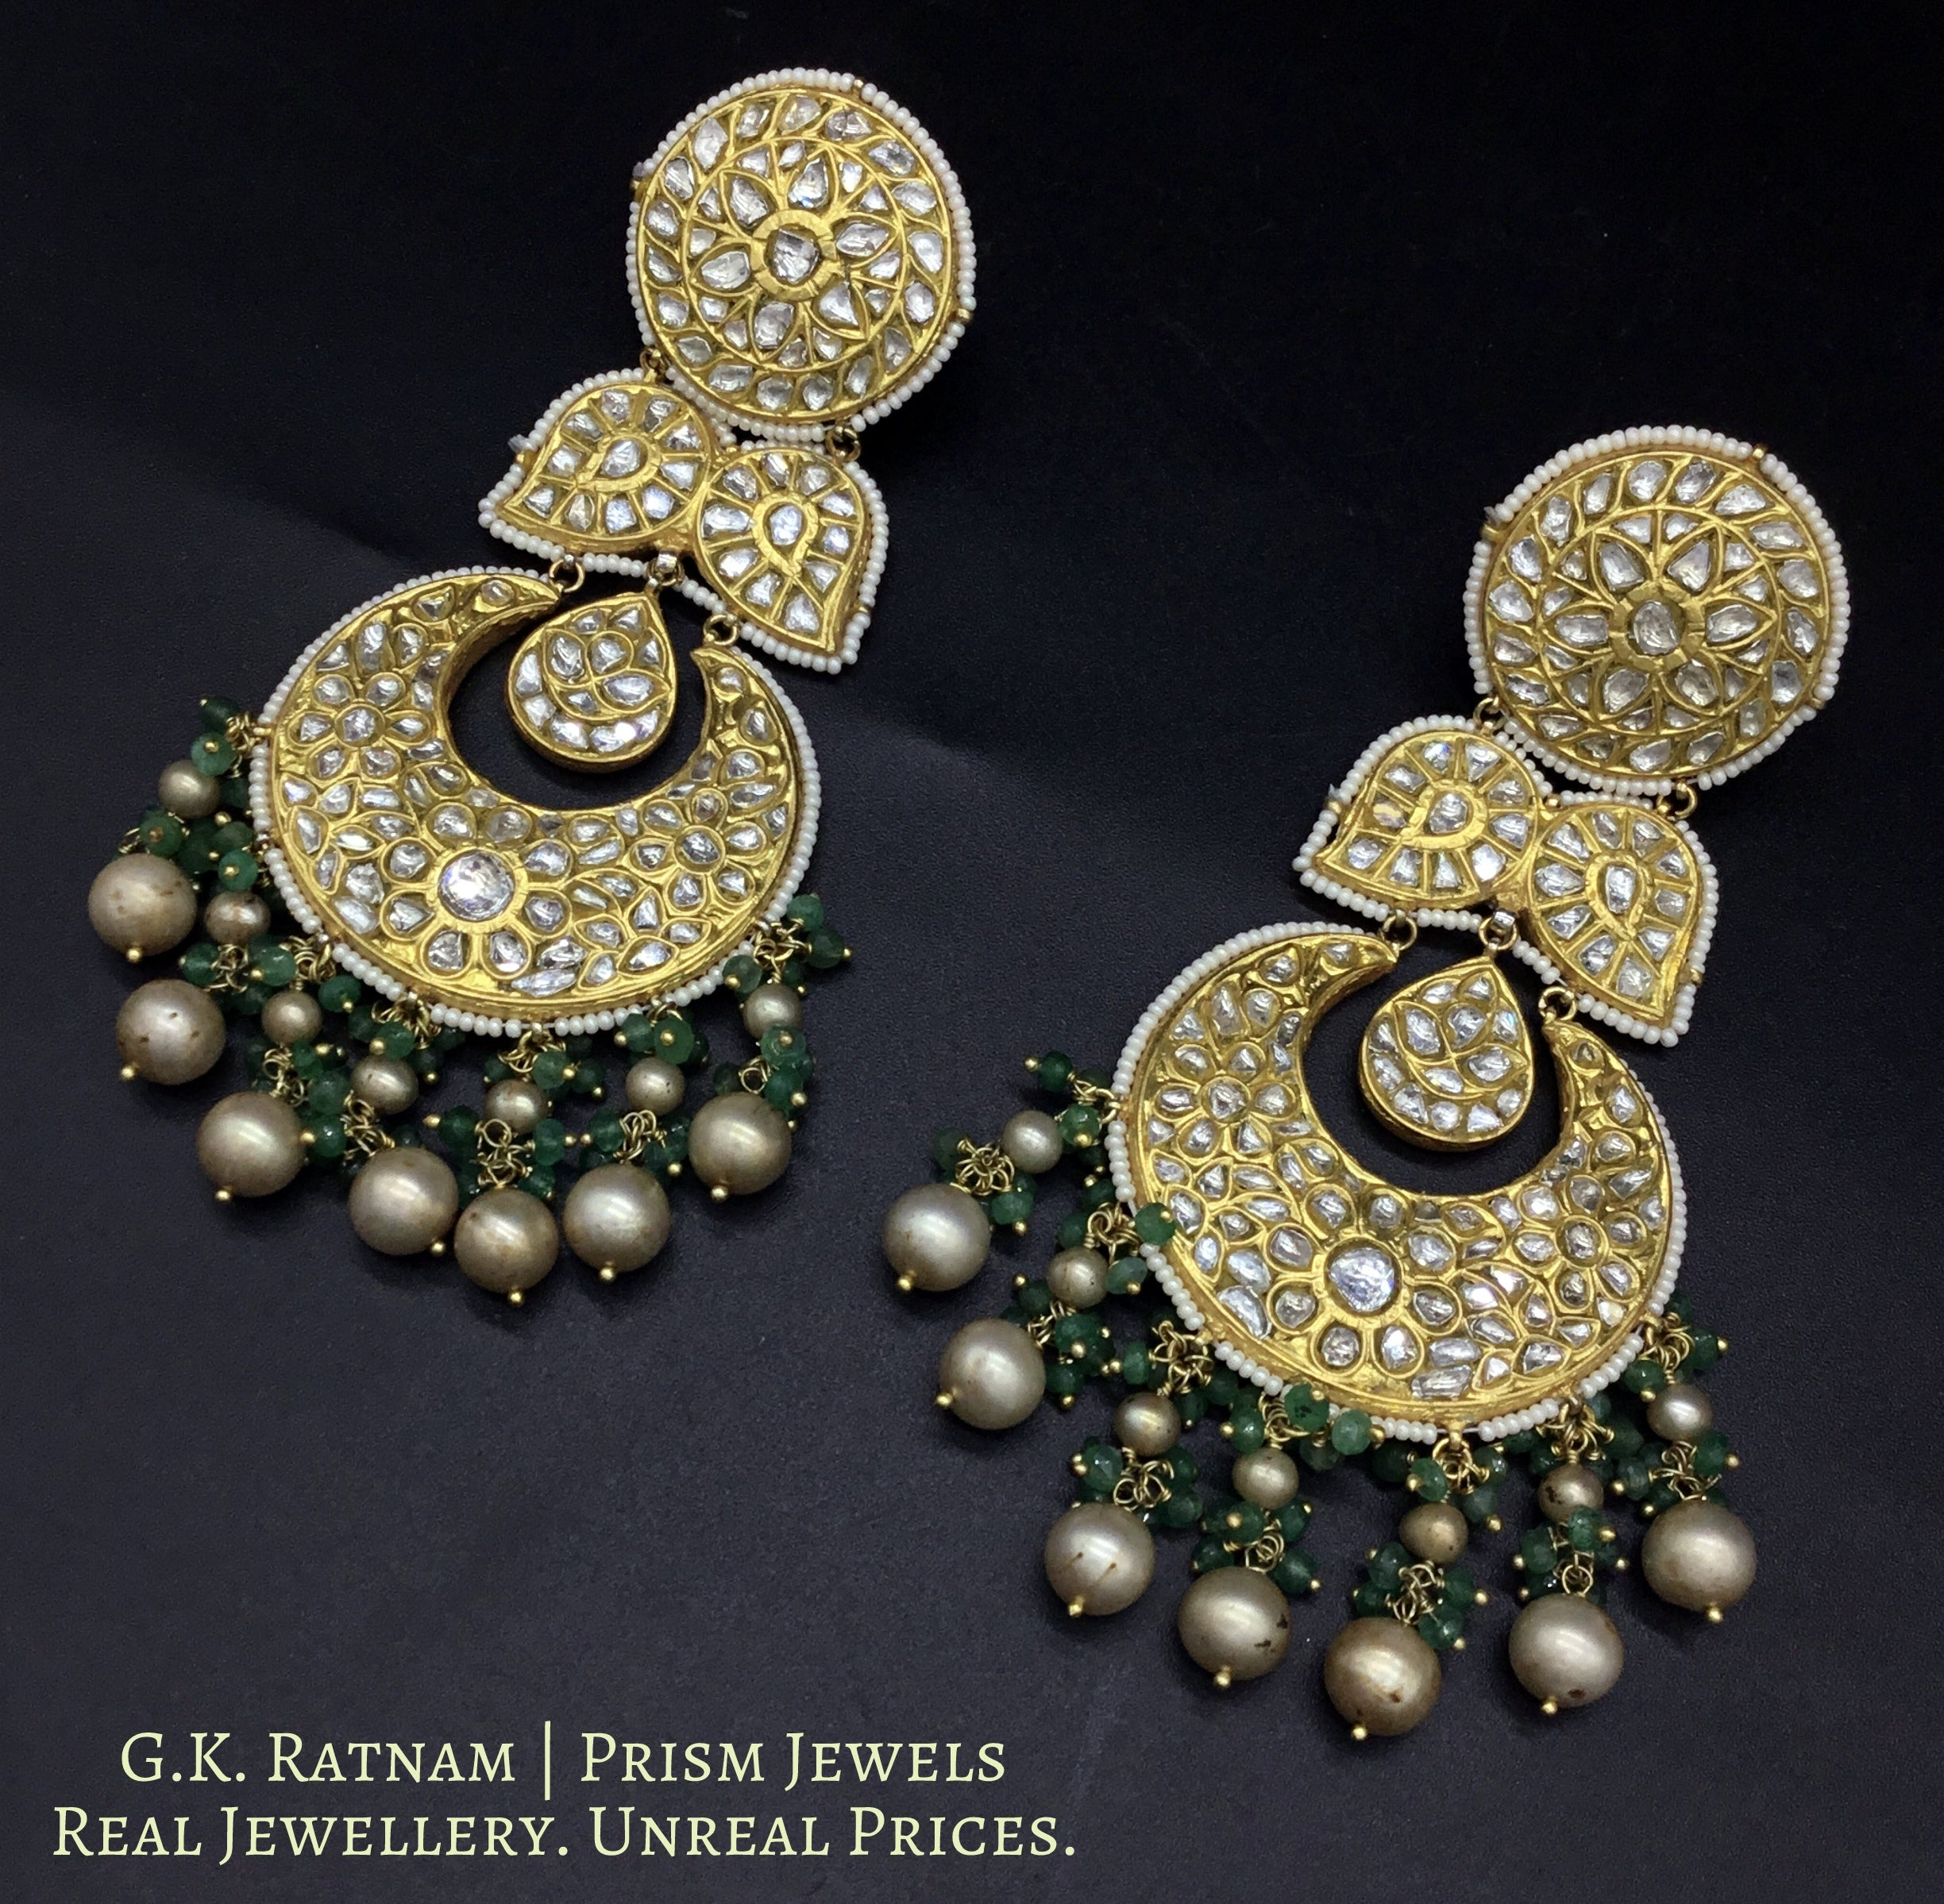 23k Gold and Diamond Polki Chand Bali Earring Pair with Antiqued freshwater pearls and emerald-grade beryls - gold diamond polki kundan meena jadau jewellery